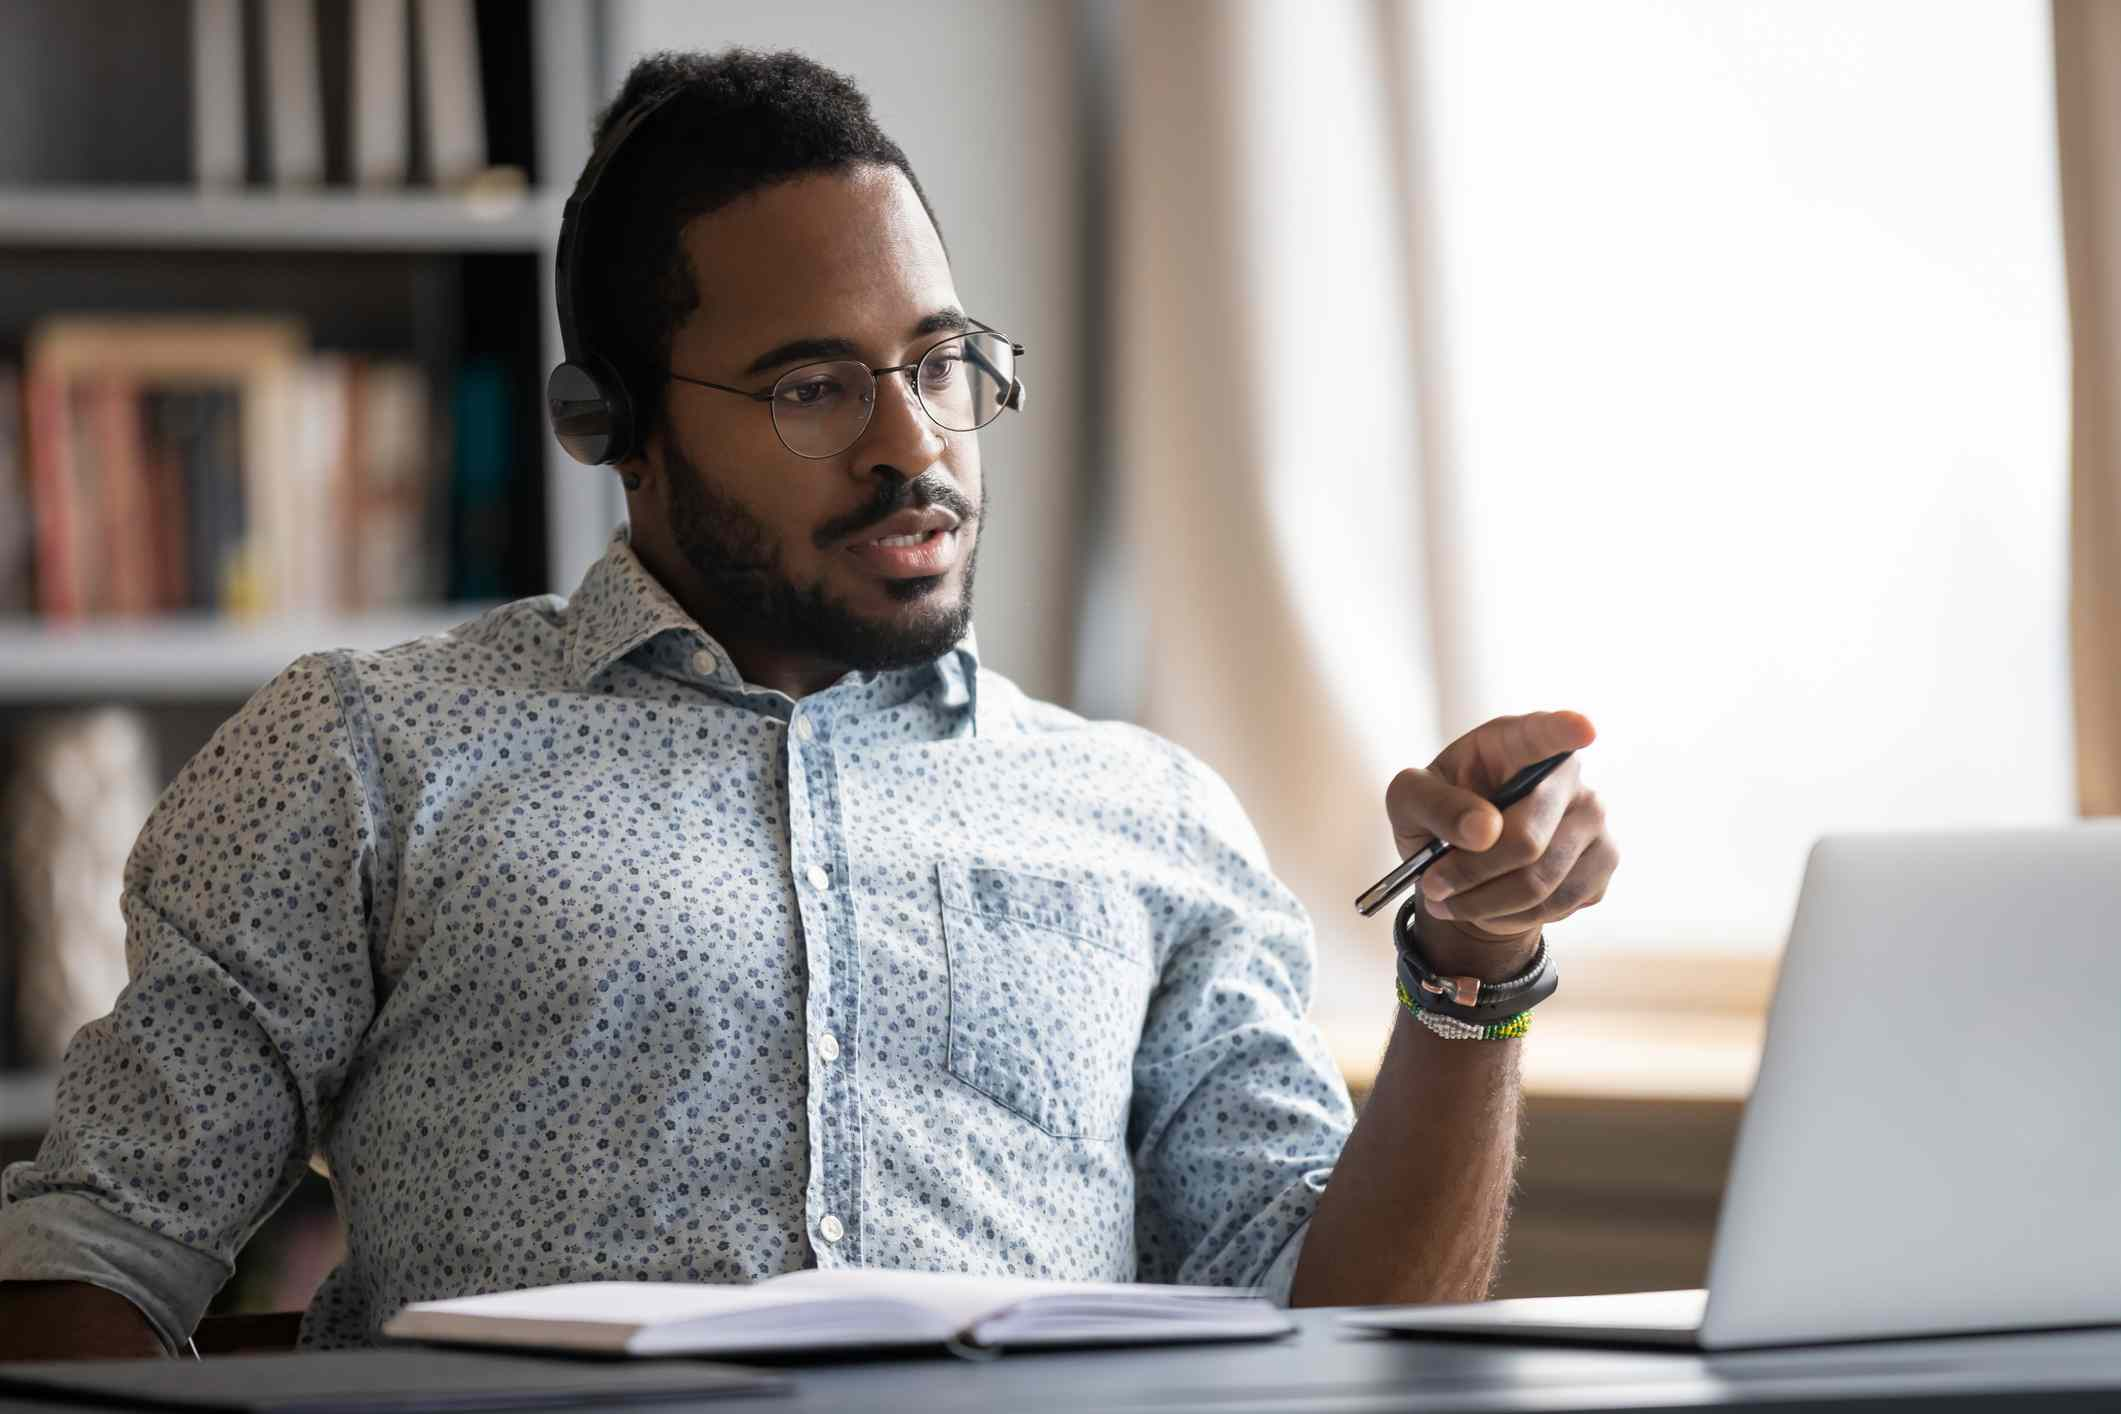 Focused biracial man in headphones busy working at workplace